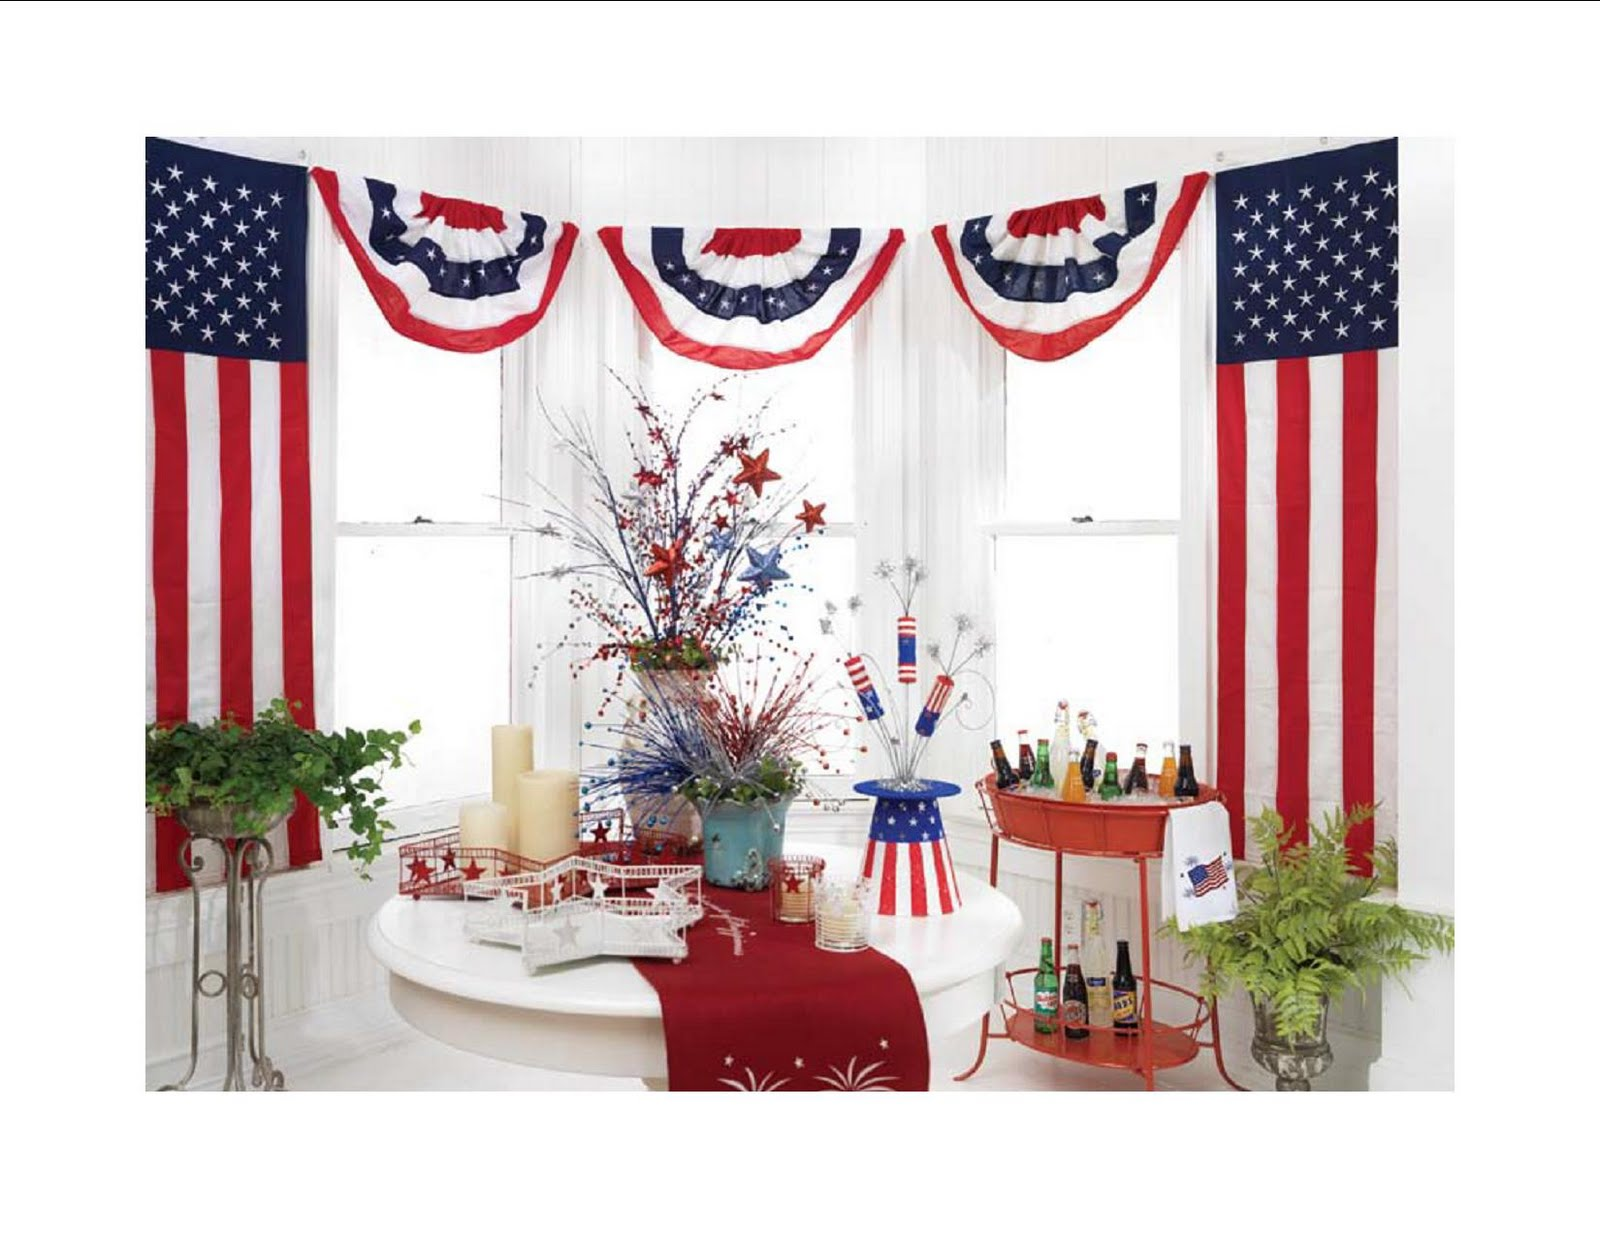 Best Shelley B Decor And More July 4Th Decorations This Month